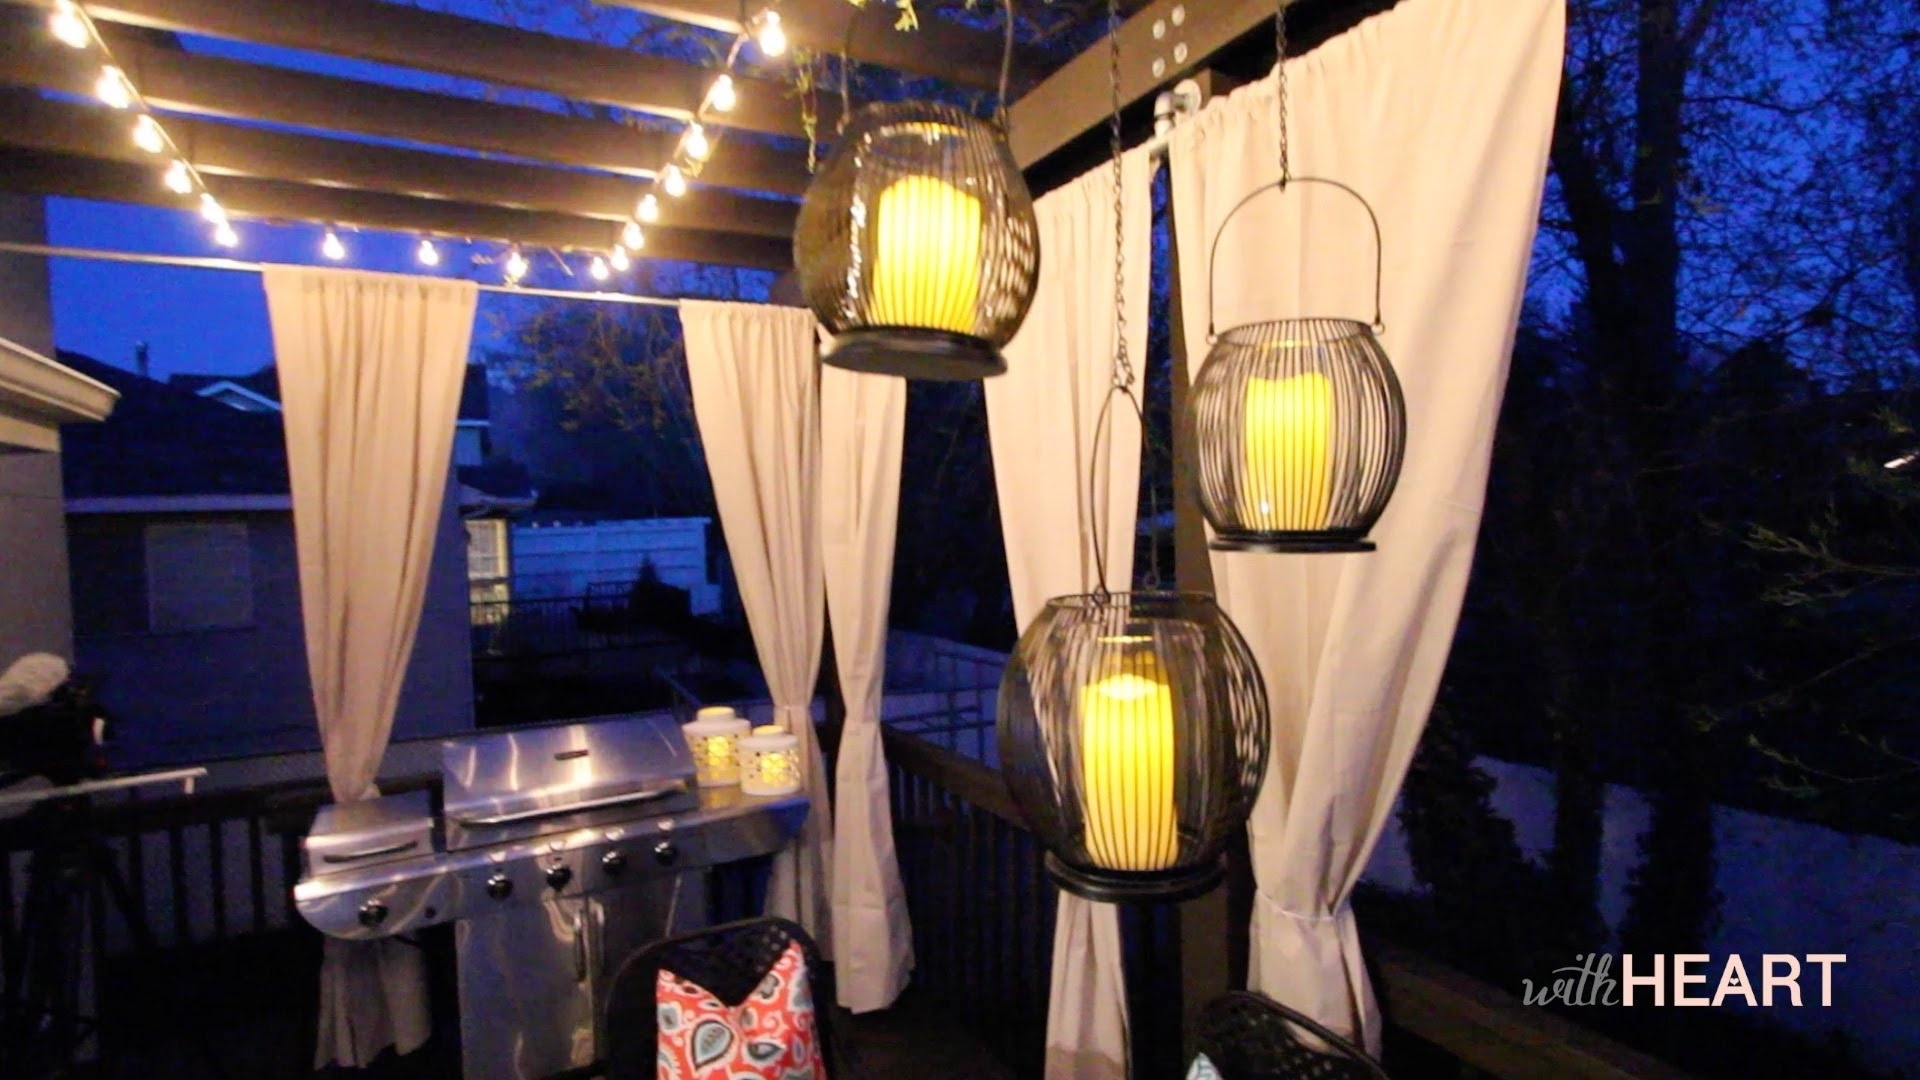 Outdoor String Lights And Hanging Lanterns | Withheart – Youtube For Outdoor Hanging String Lanterns (View 15 of 15)